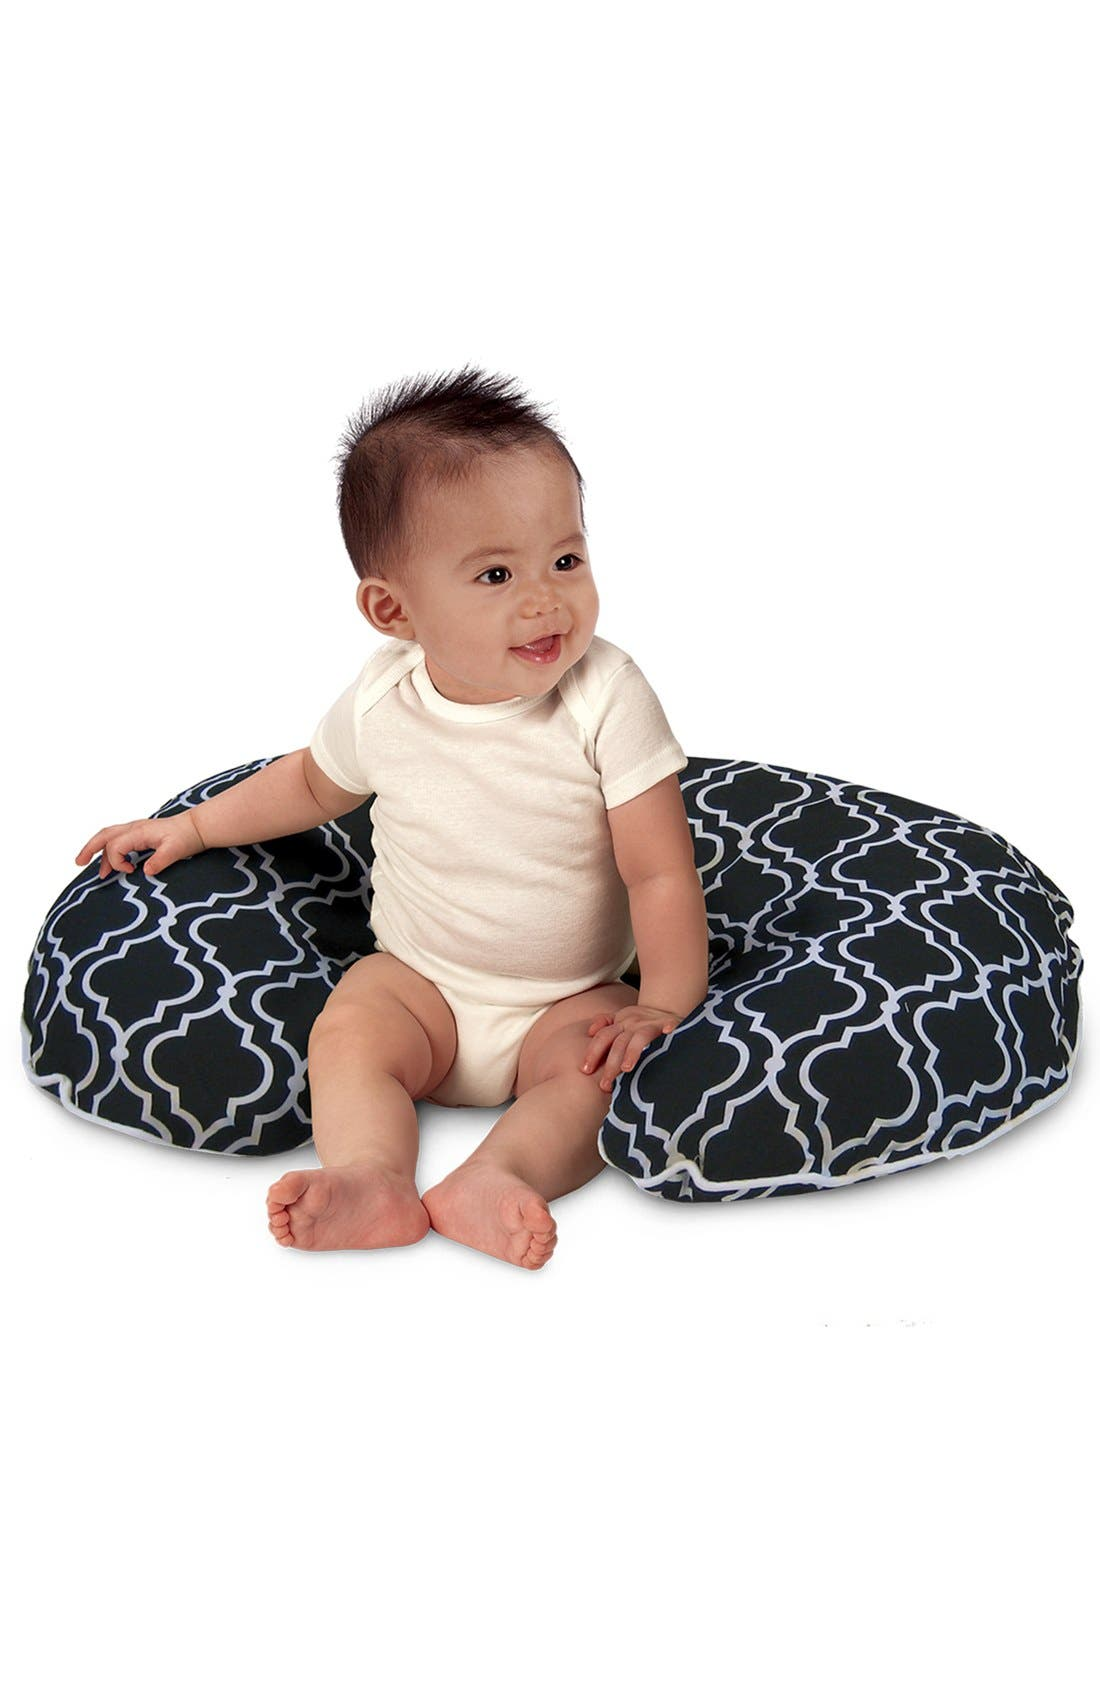 Main Image - Boppy 'Seville' Pillow & Slipcover